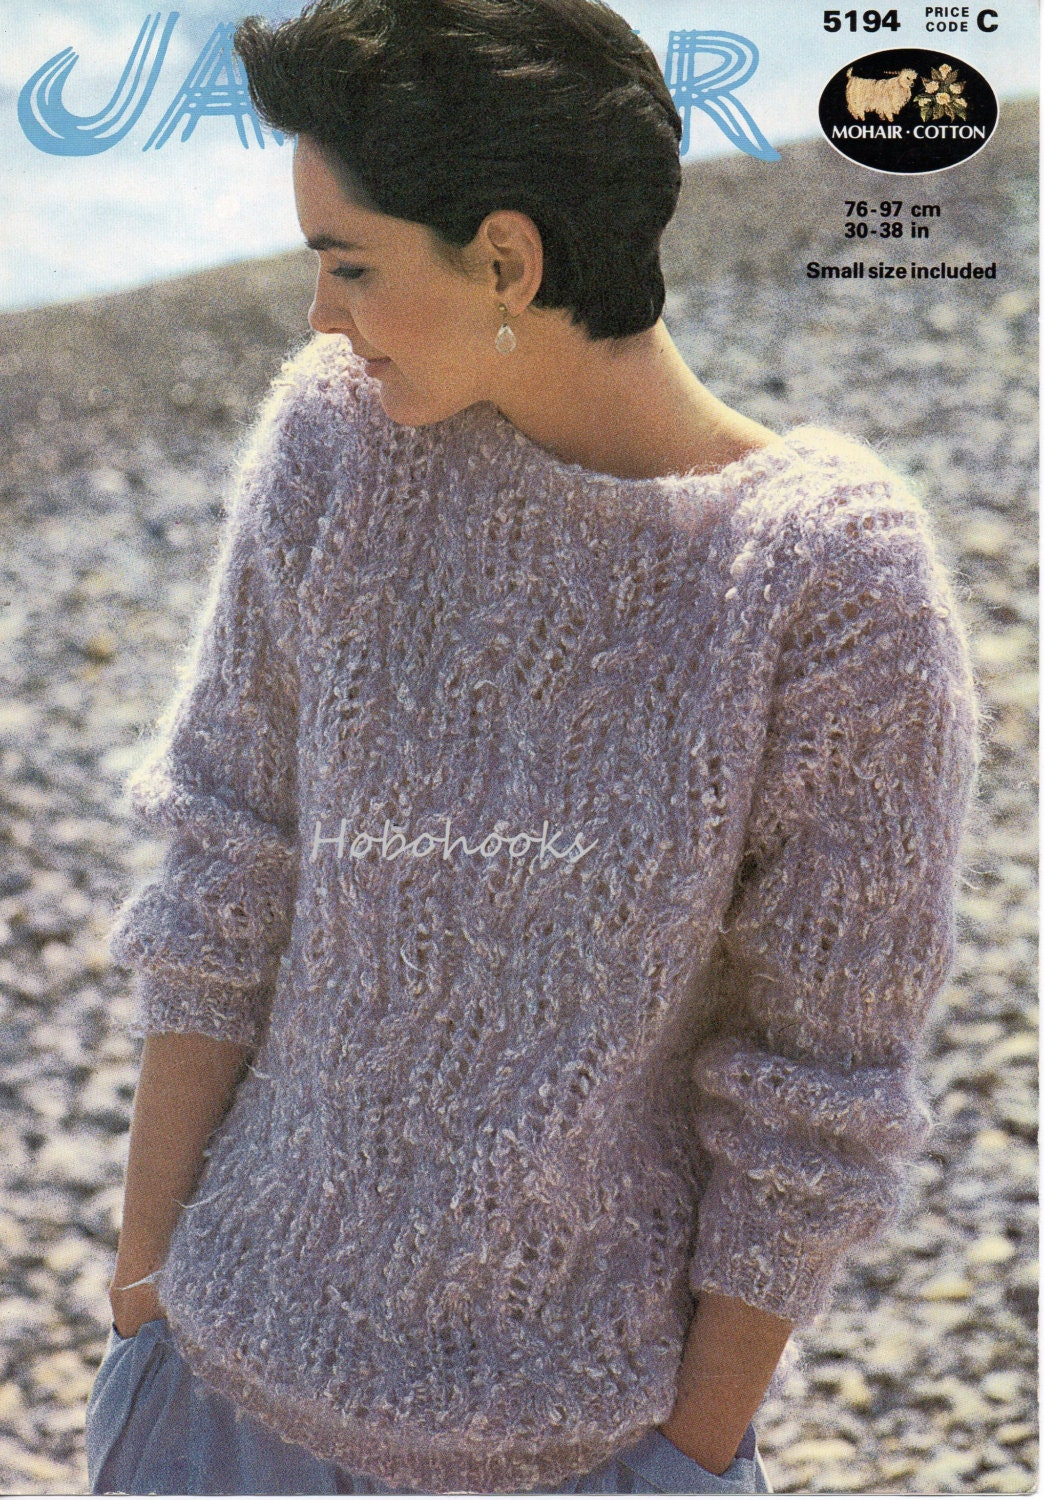 Ladies Lacy Chunky Mohair Sweater 30 To 38 Inch Bust